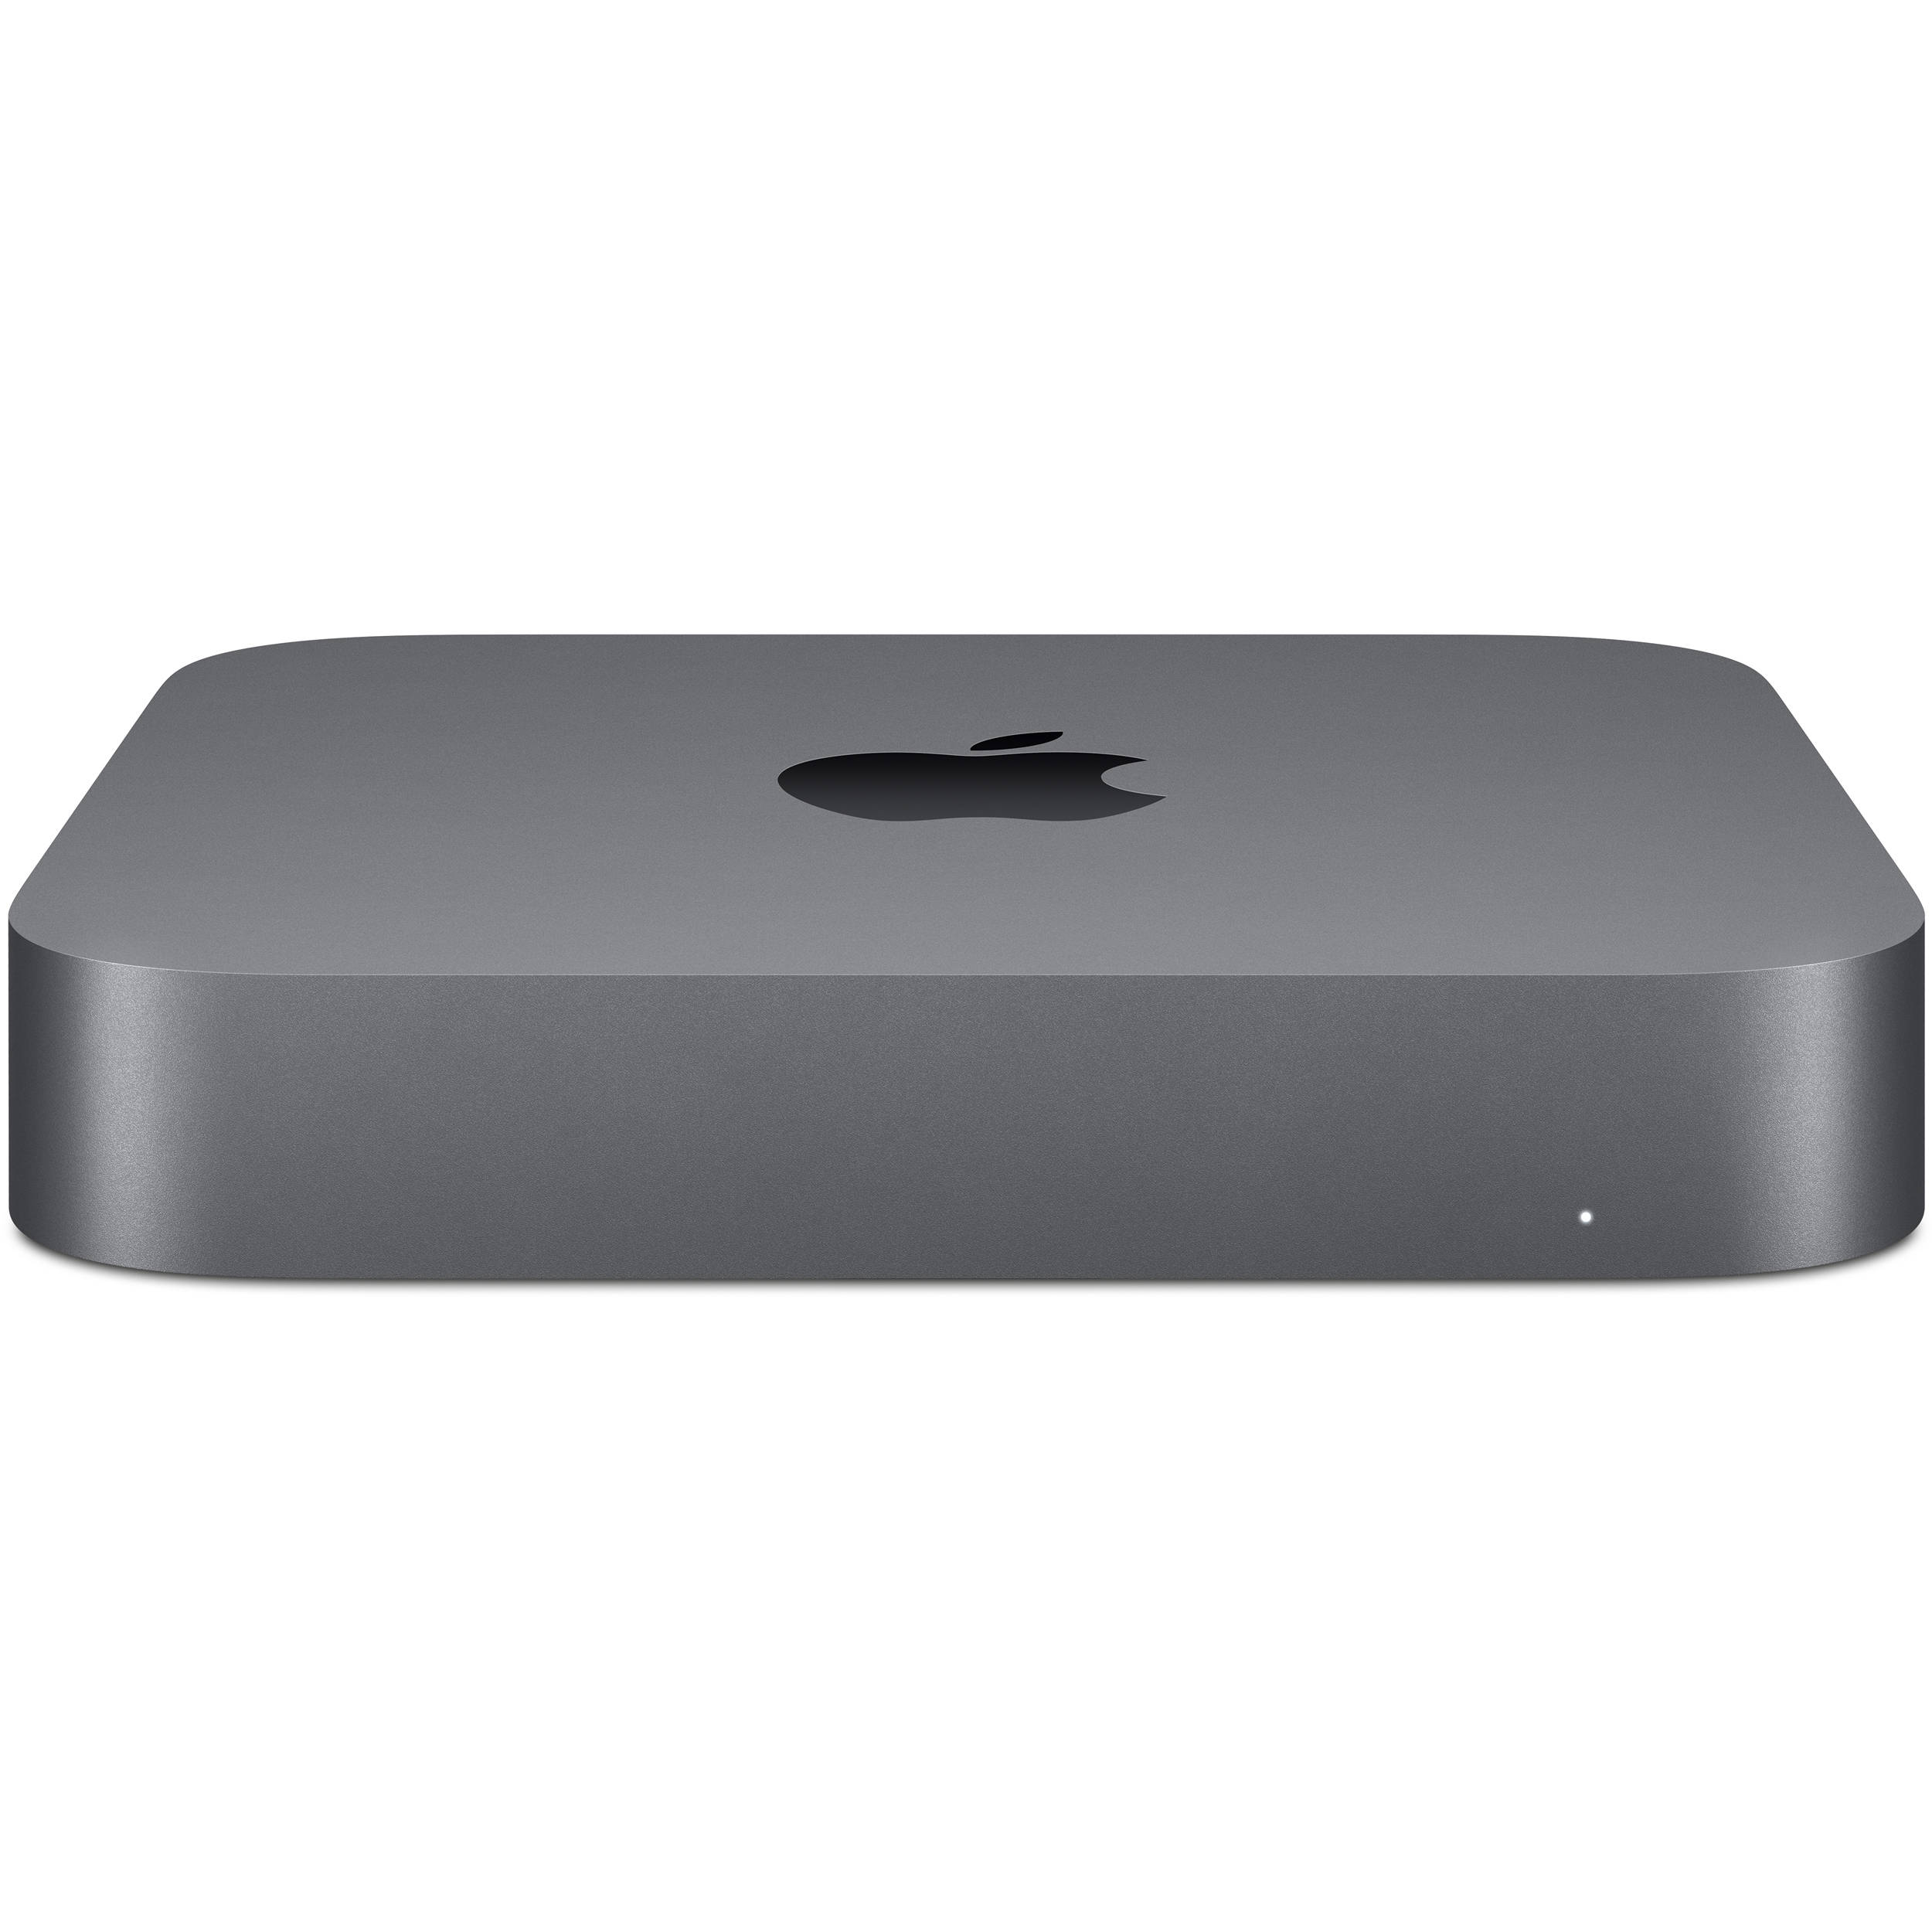 https://www.bhphotovideo.com/images/images2500x2500/apple_z0w1_mrtr27_bh_mac_mini_late_2018_1441915.jpg